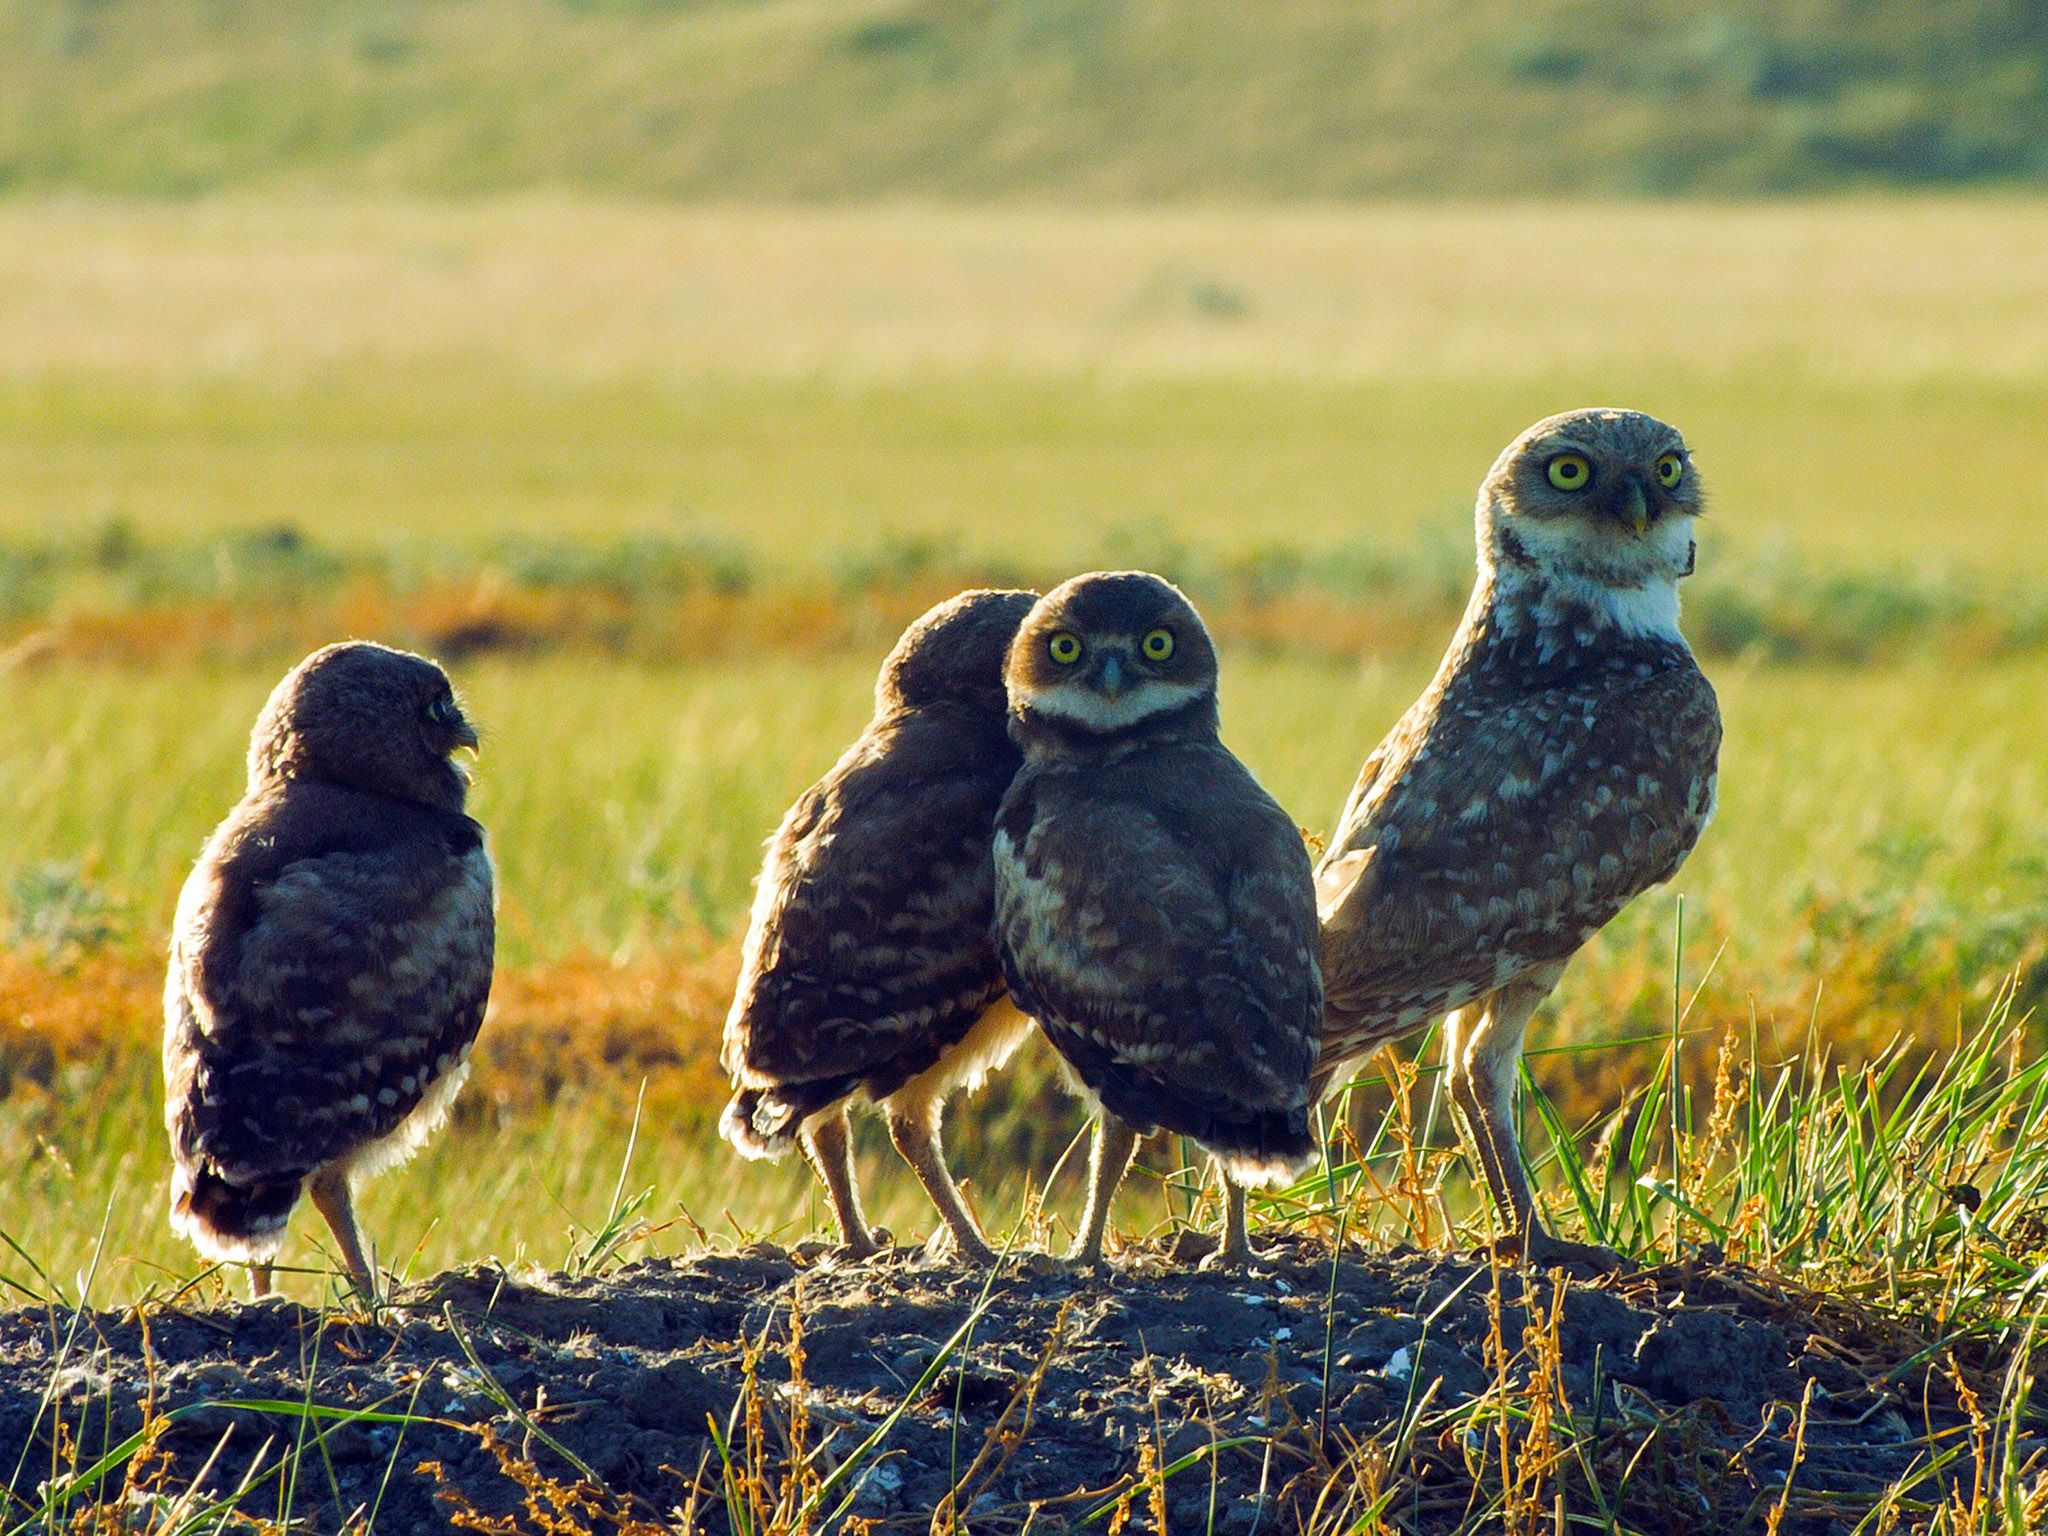 Burrowing owl adult and 3 chicks. This image is from Wild Canada. [Photo of the day - اکتوبر 2014]